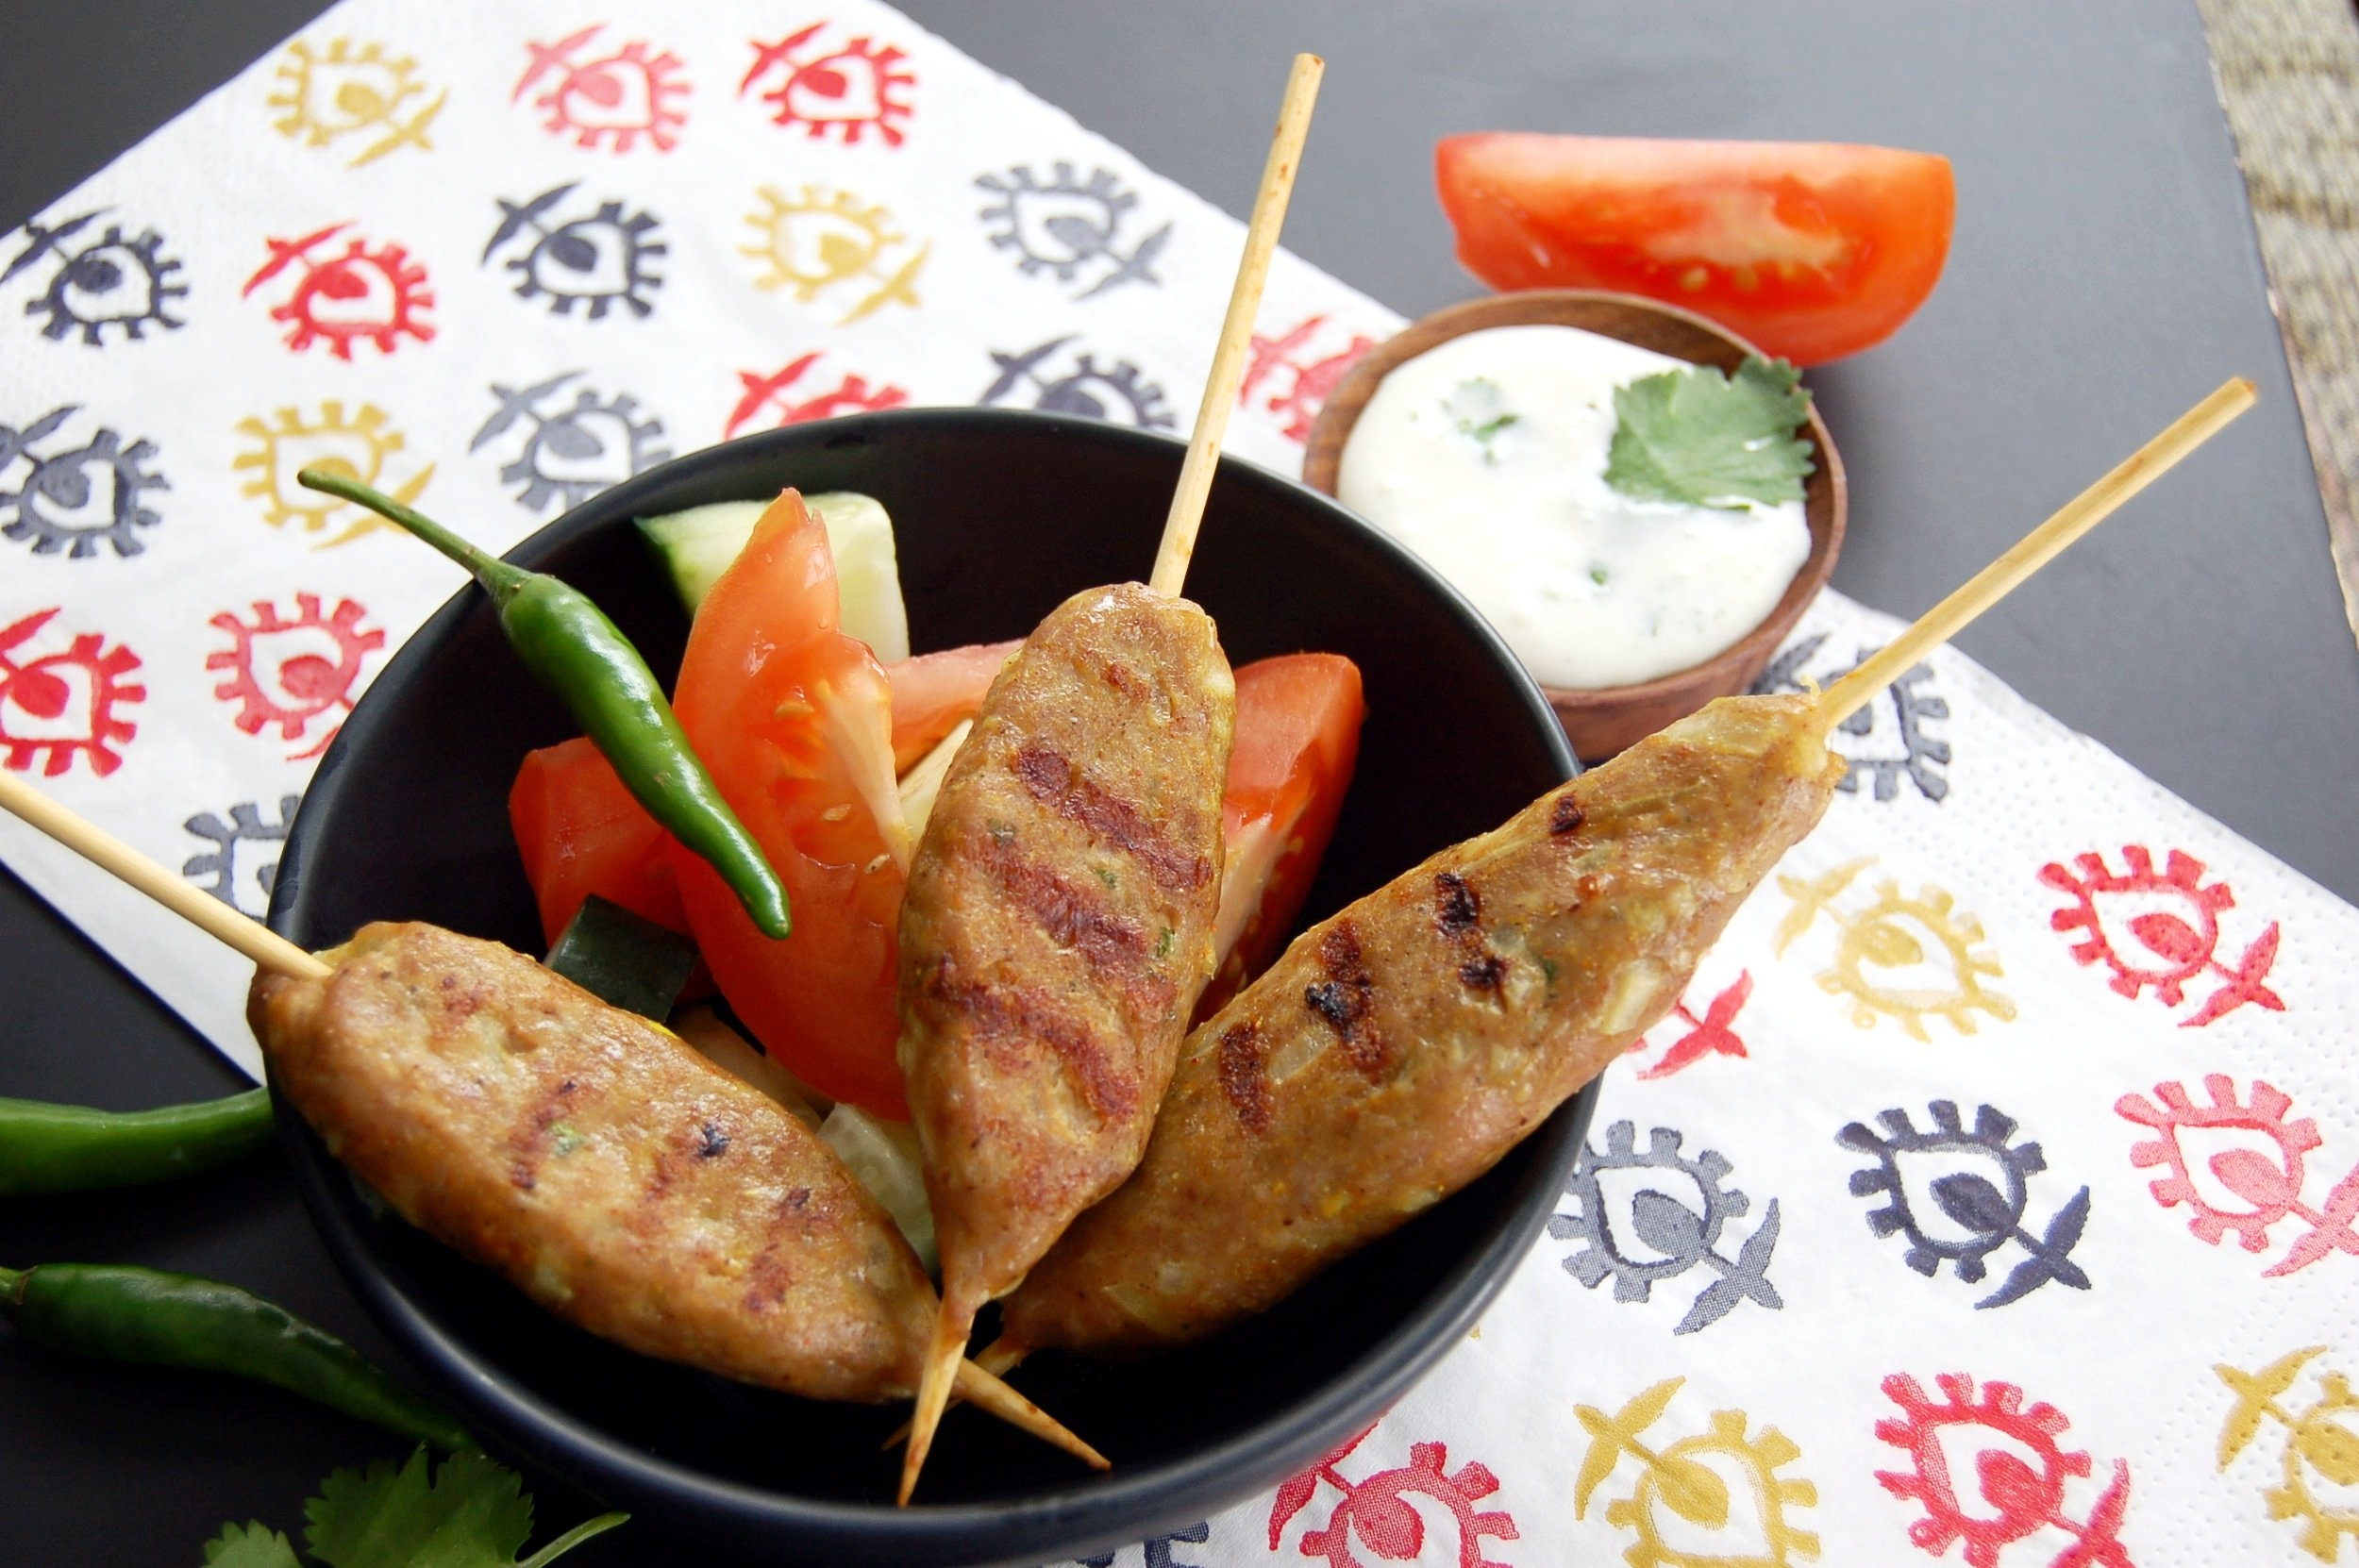 INDIAN-STYLE KEBABS - {Made with Arvinda's Kebab Masala}Savour one of India's most beloved street foods made with Arvinda's Kebab Masala, served with raita and coriander chutney. Stuff into a pita with garlic mayo sauce or make into burgers for your next BBQ, these incredibly delicious and flavourful kebabs are guaranteed to be hit with family and friends!